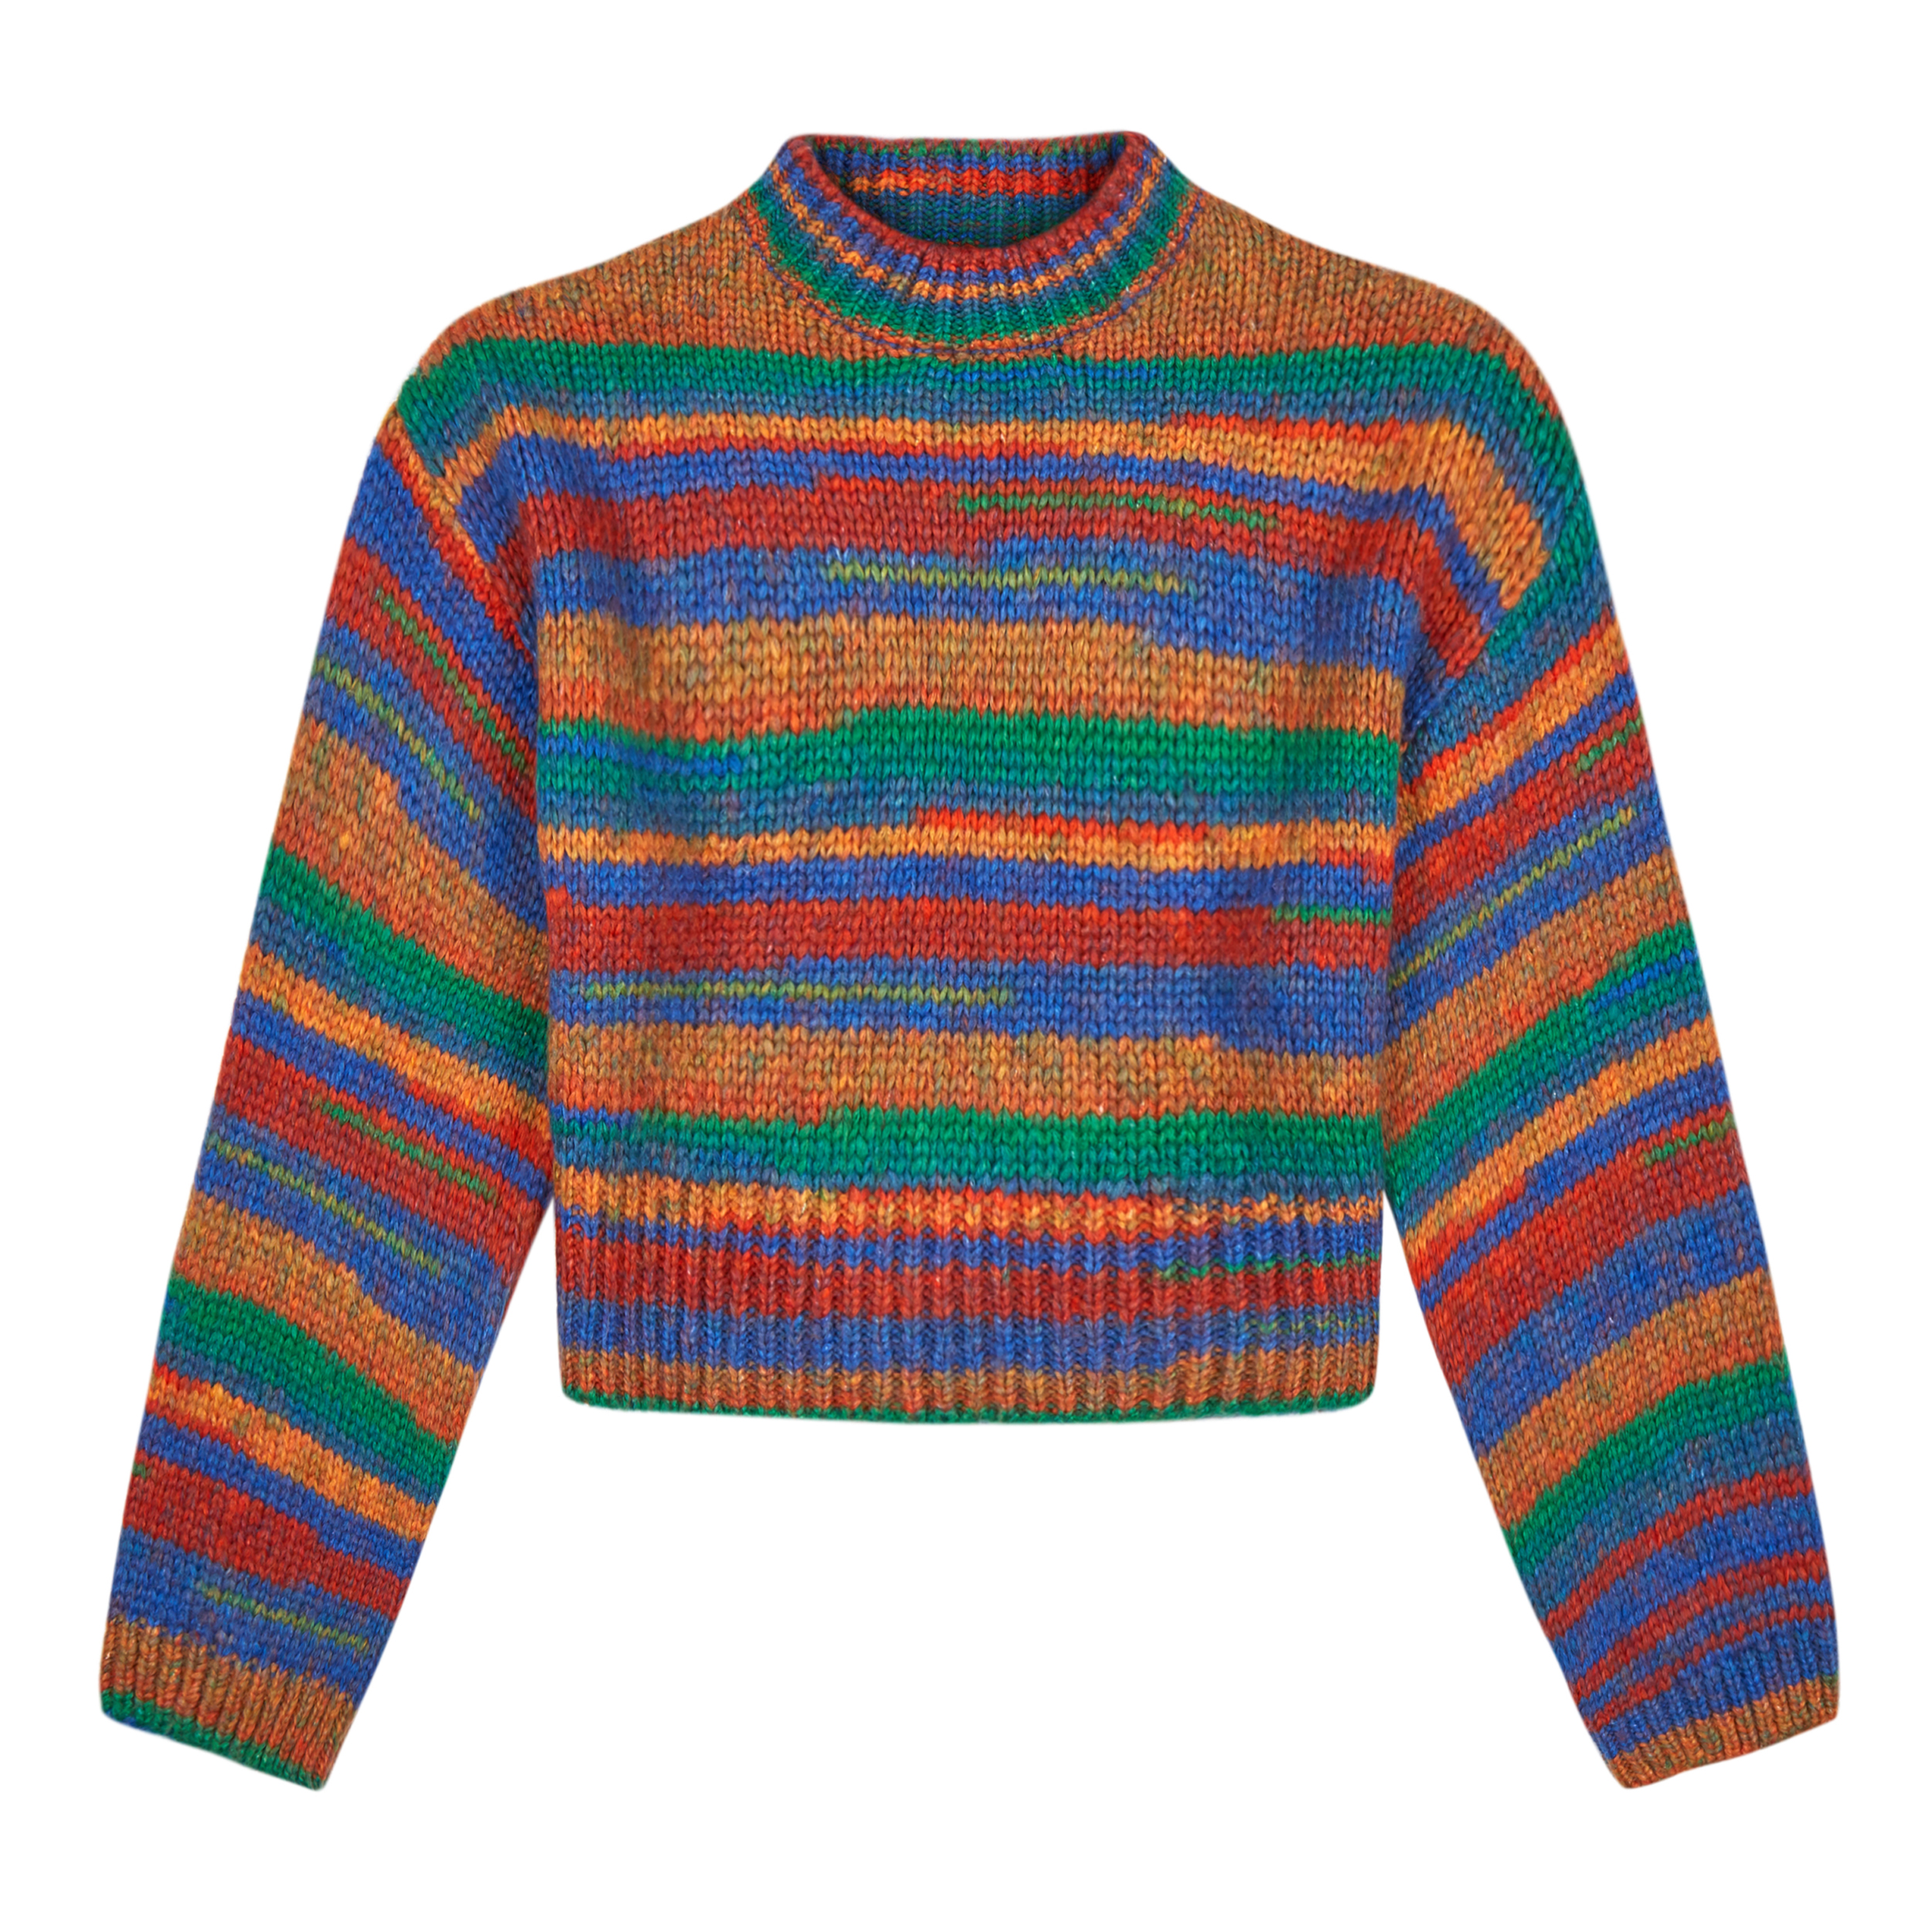 88abba94a28 Jumpers & Knitwear: Best New Season High Street & Designer Knits